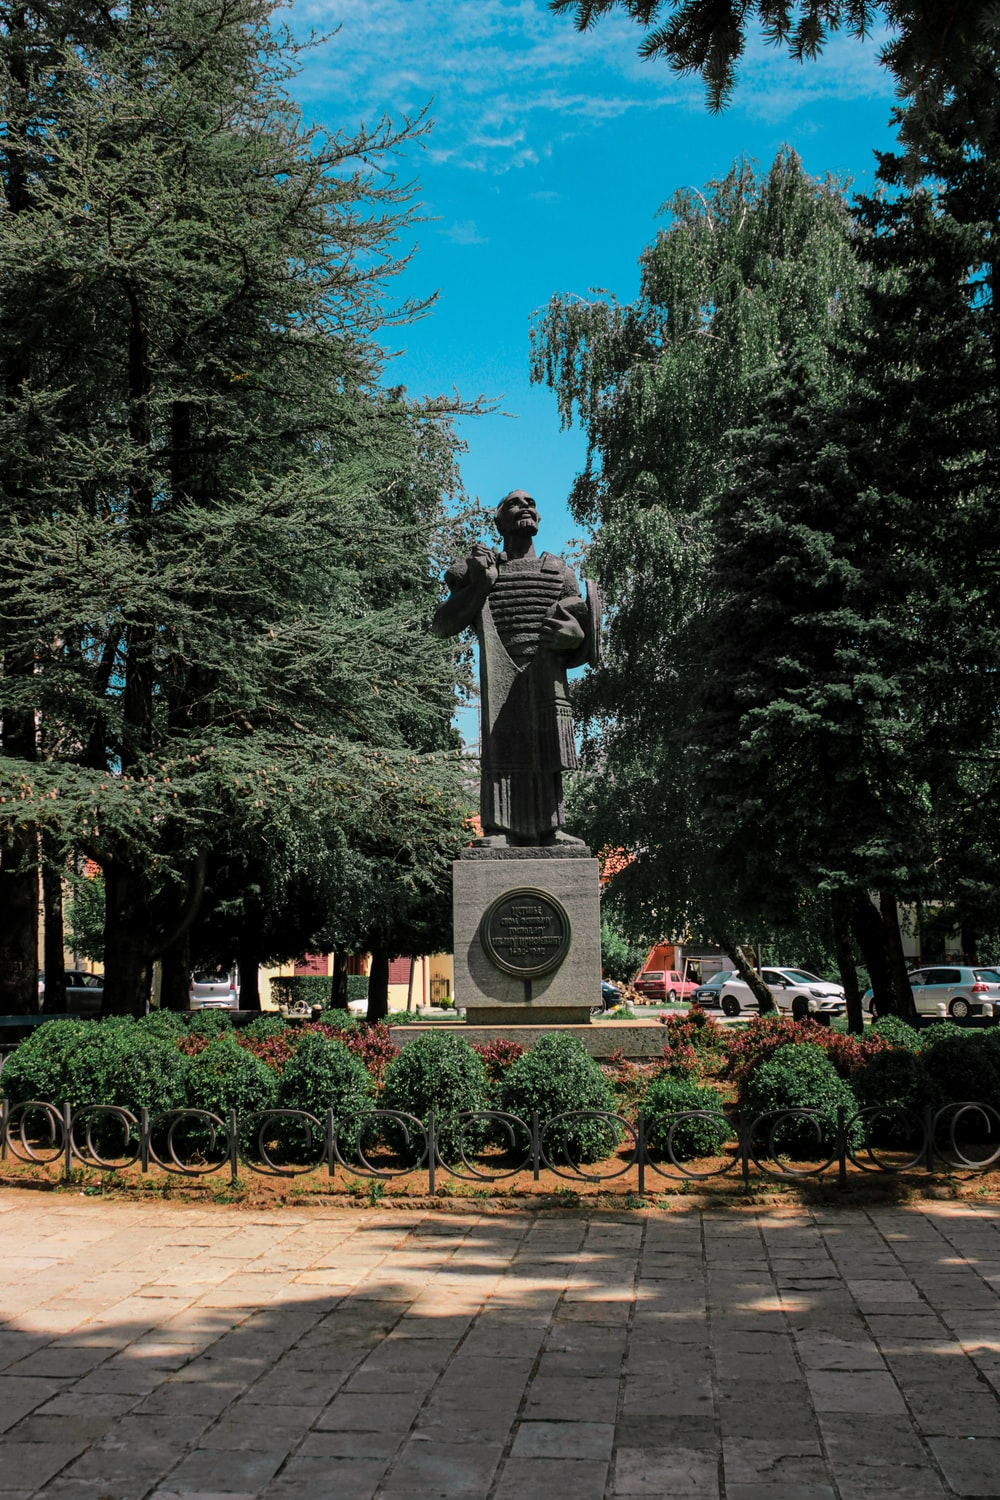 gray statue near green trees during daytime